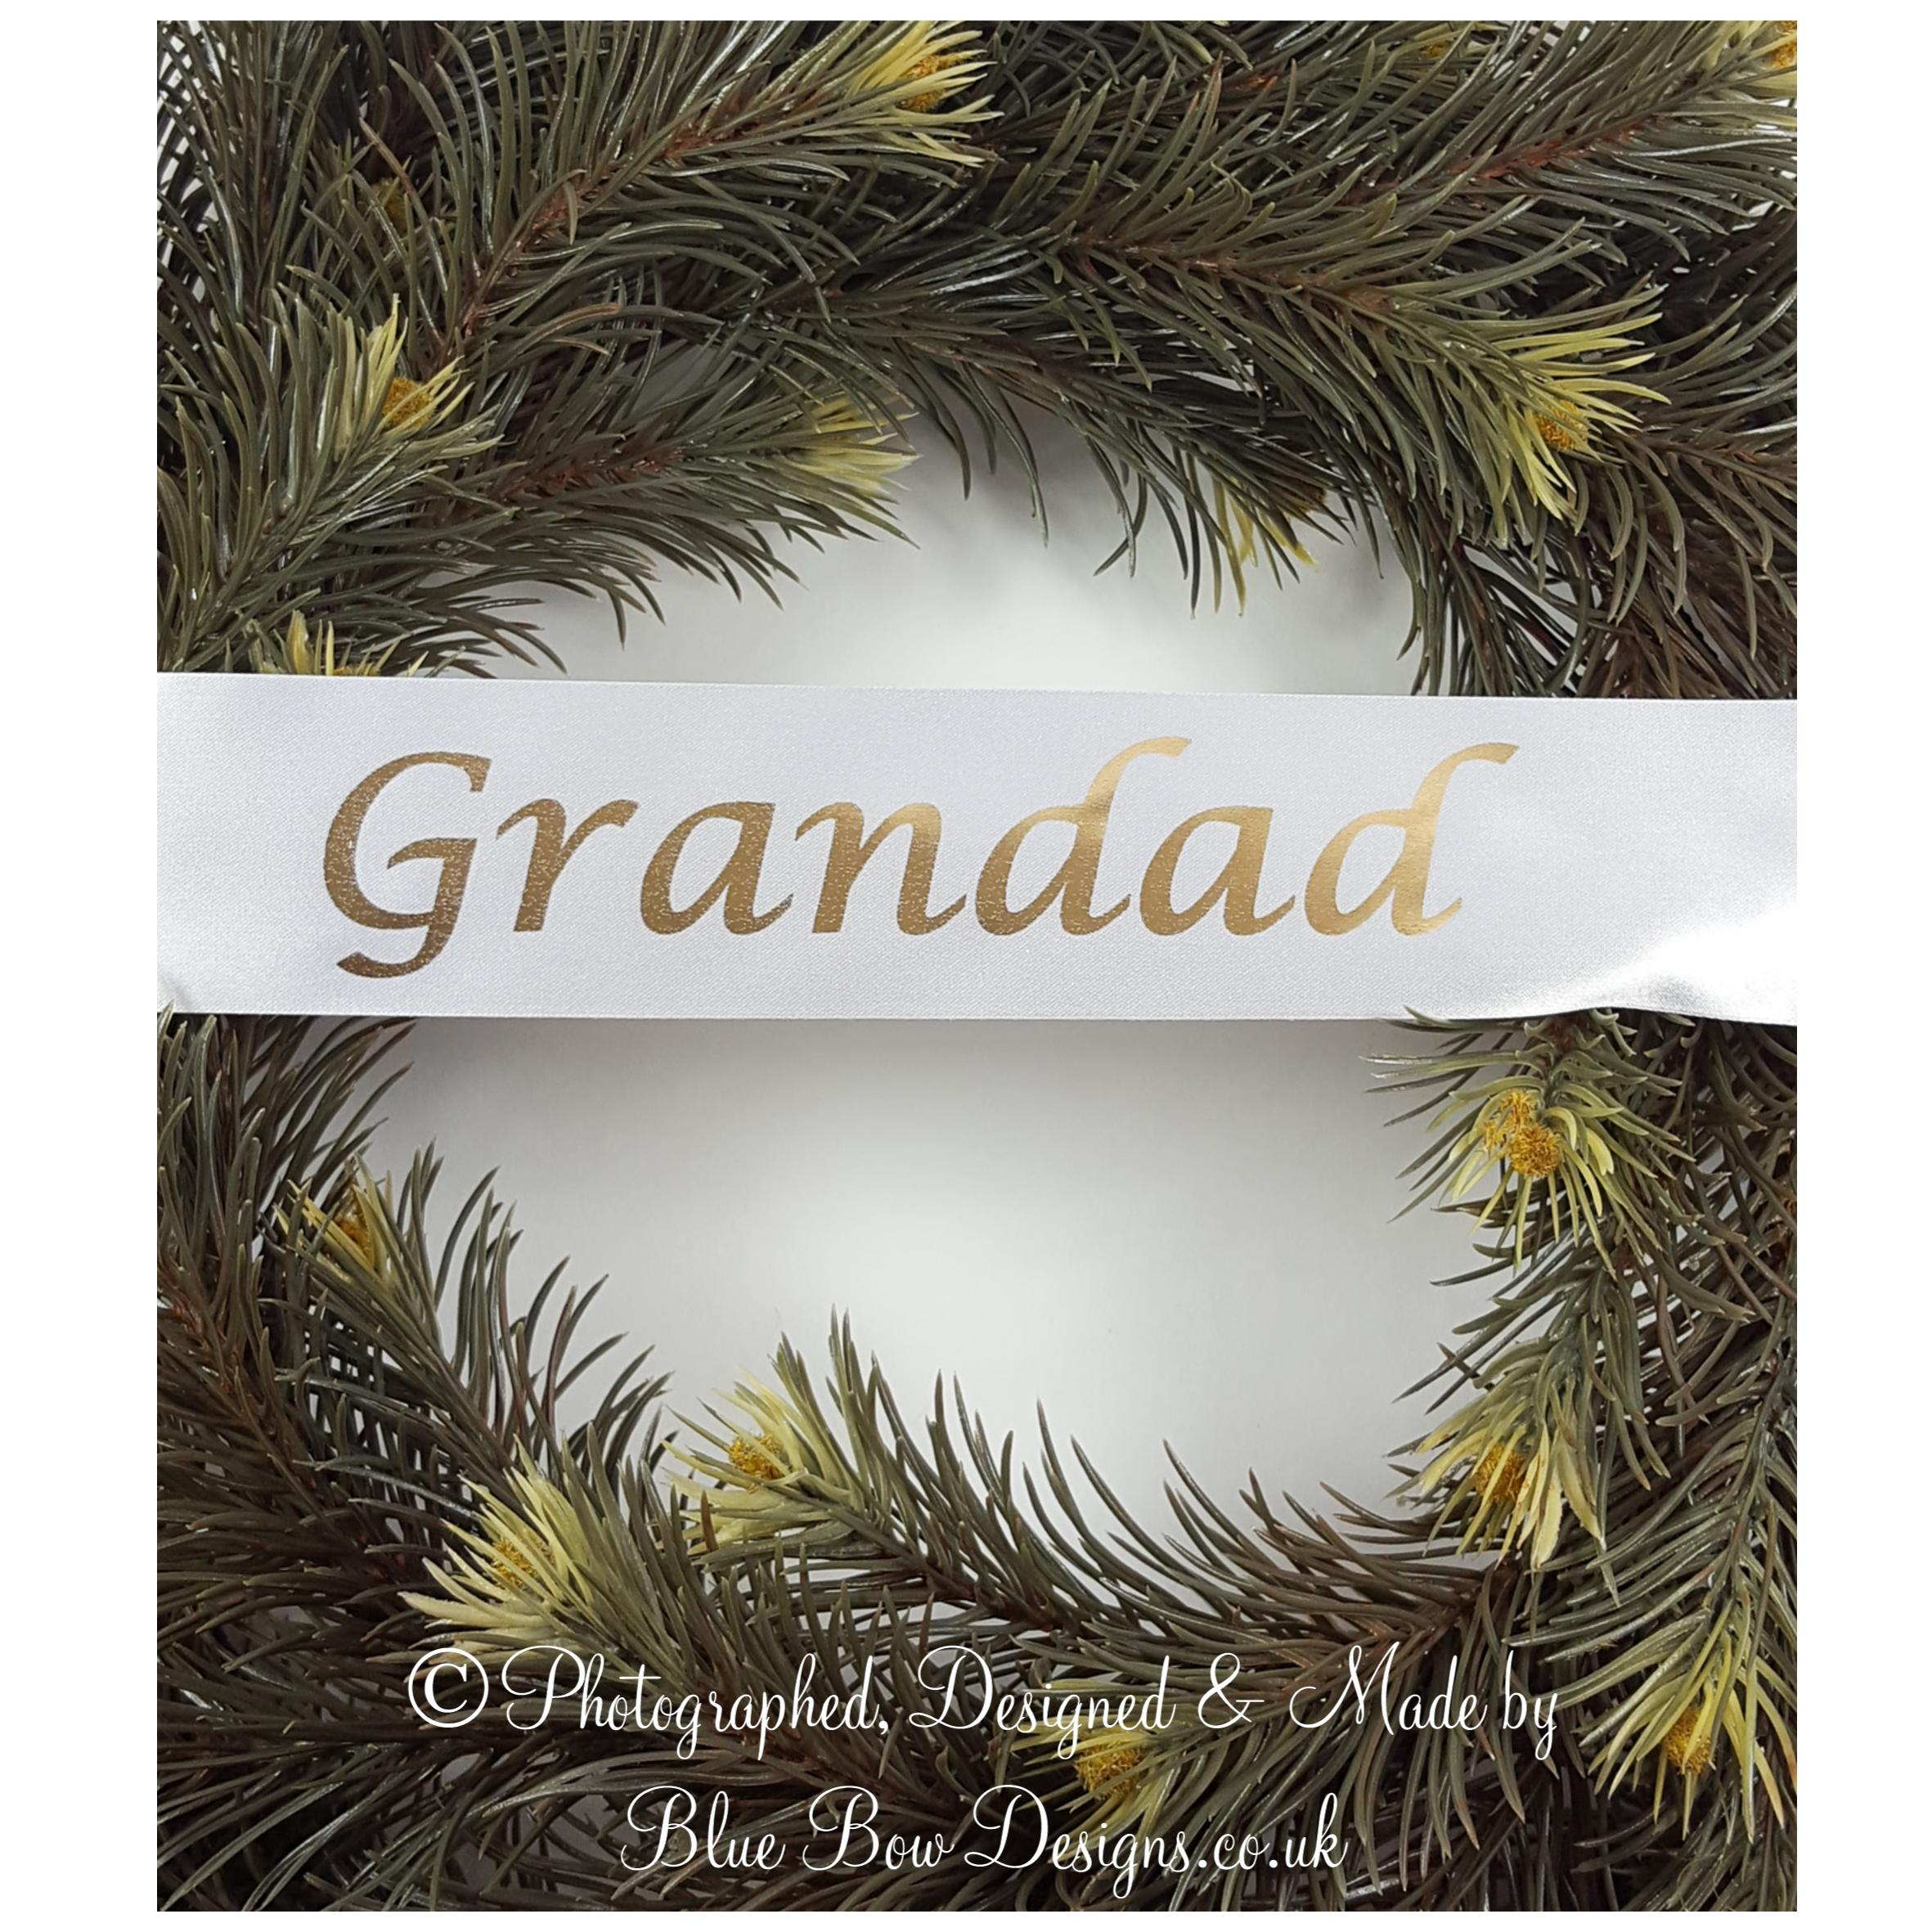 Grandad white wreath ribbon with gold text